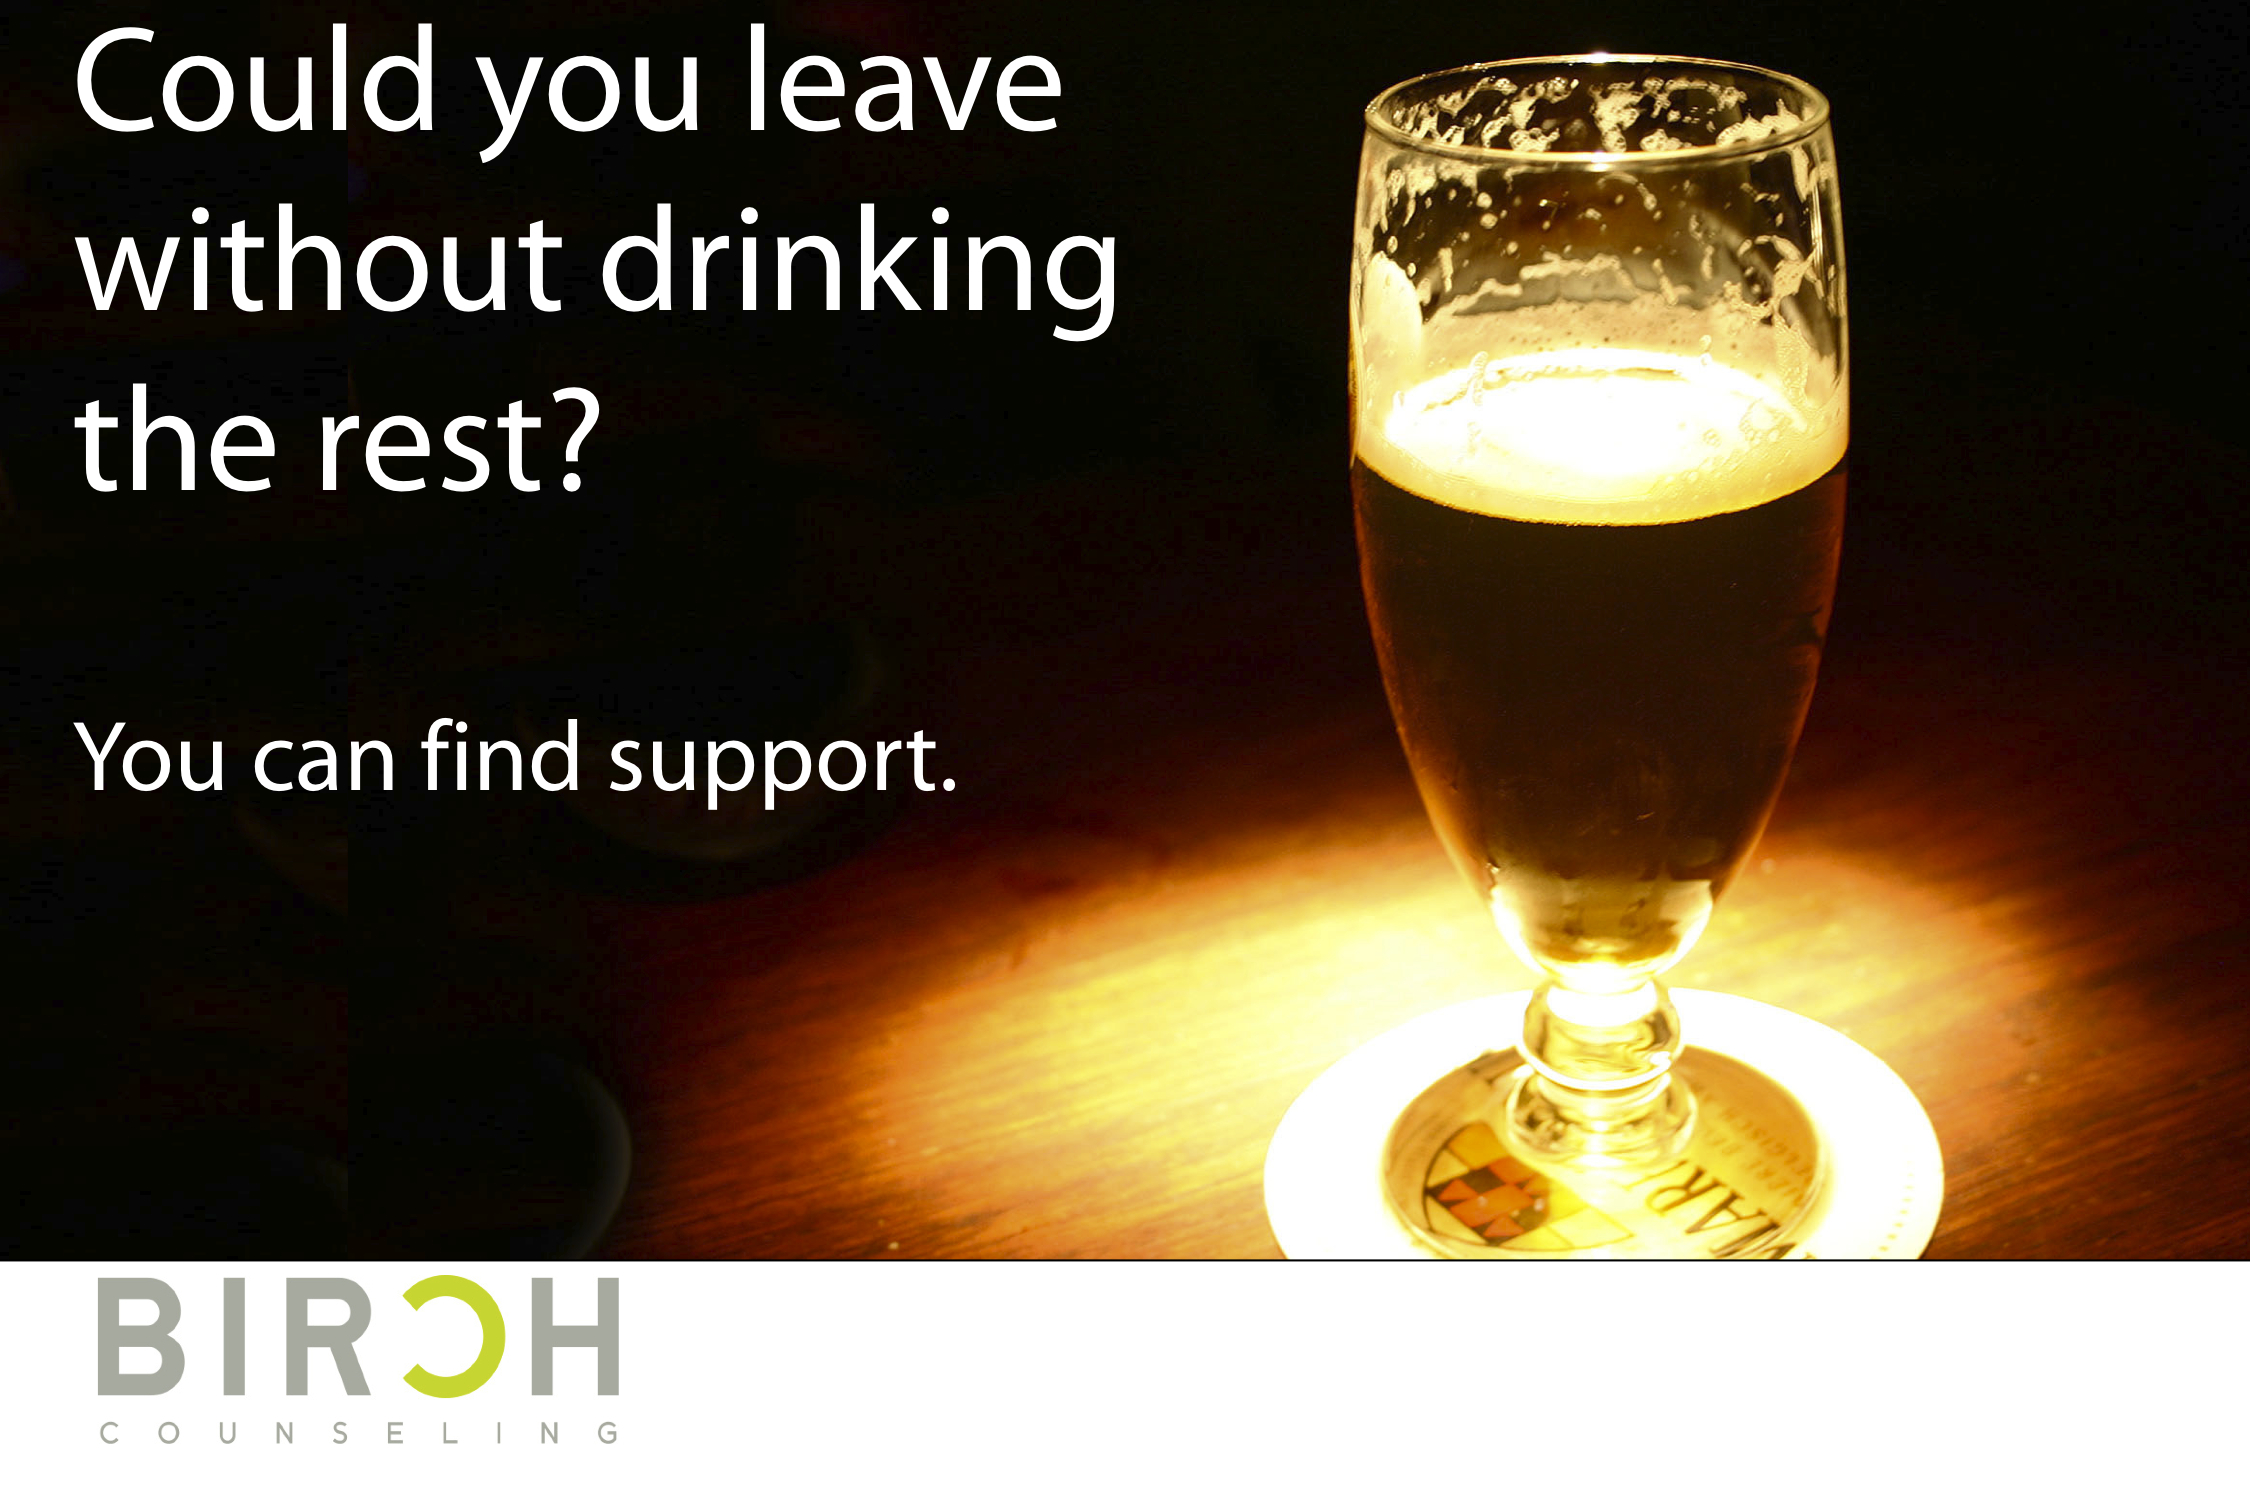 This simple question could lead to an exploration about alcohol abuse or dependency.